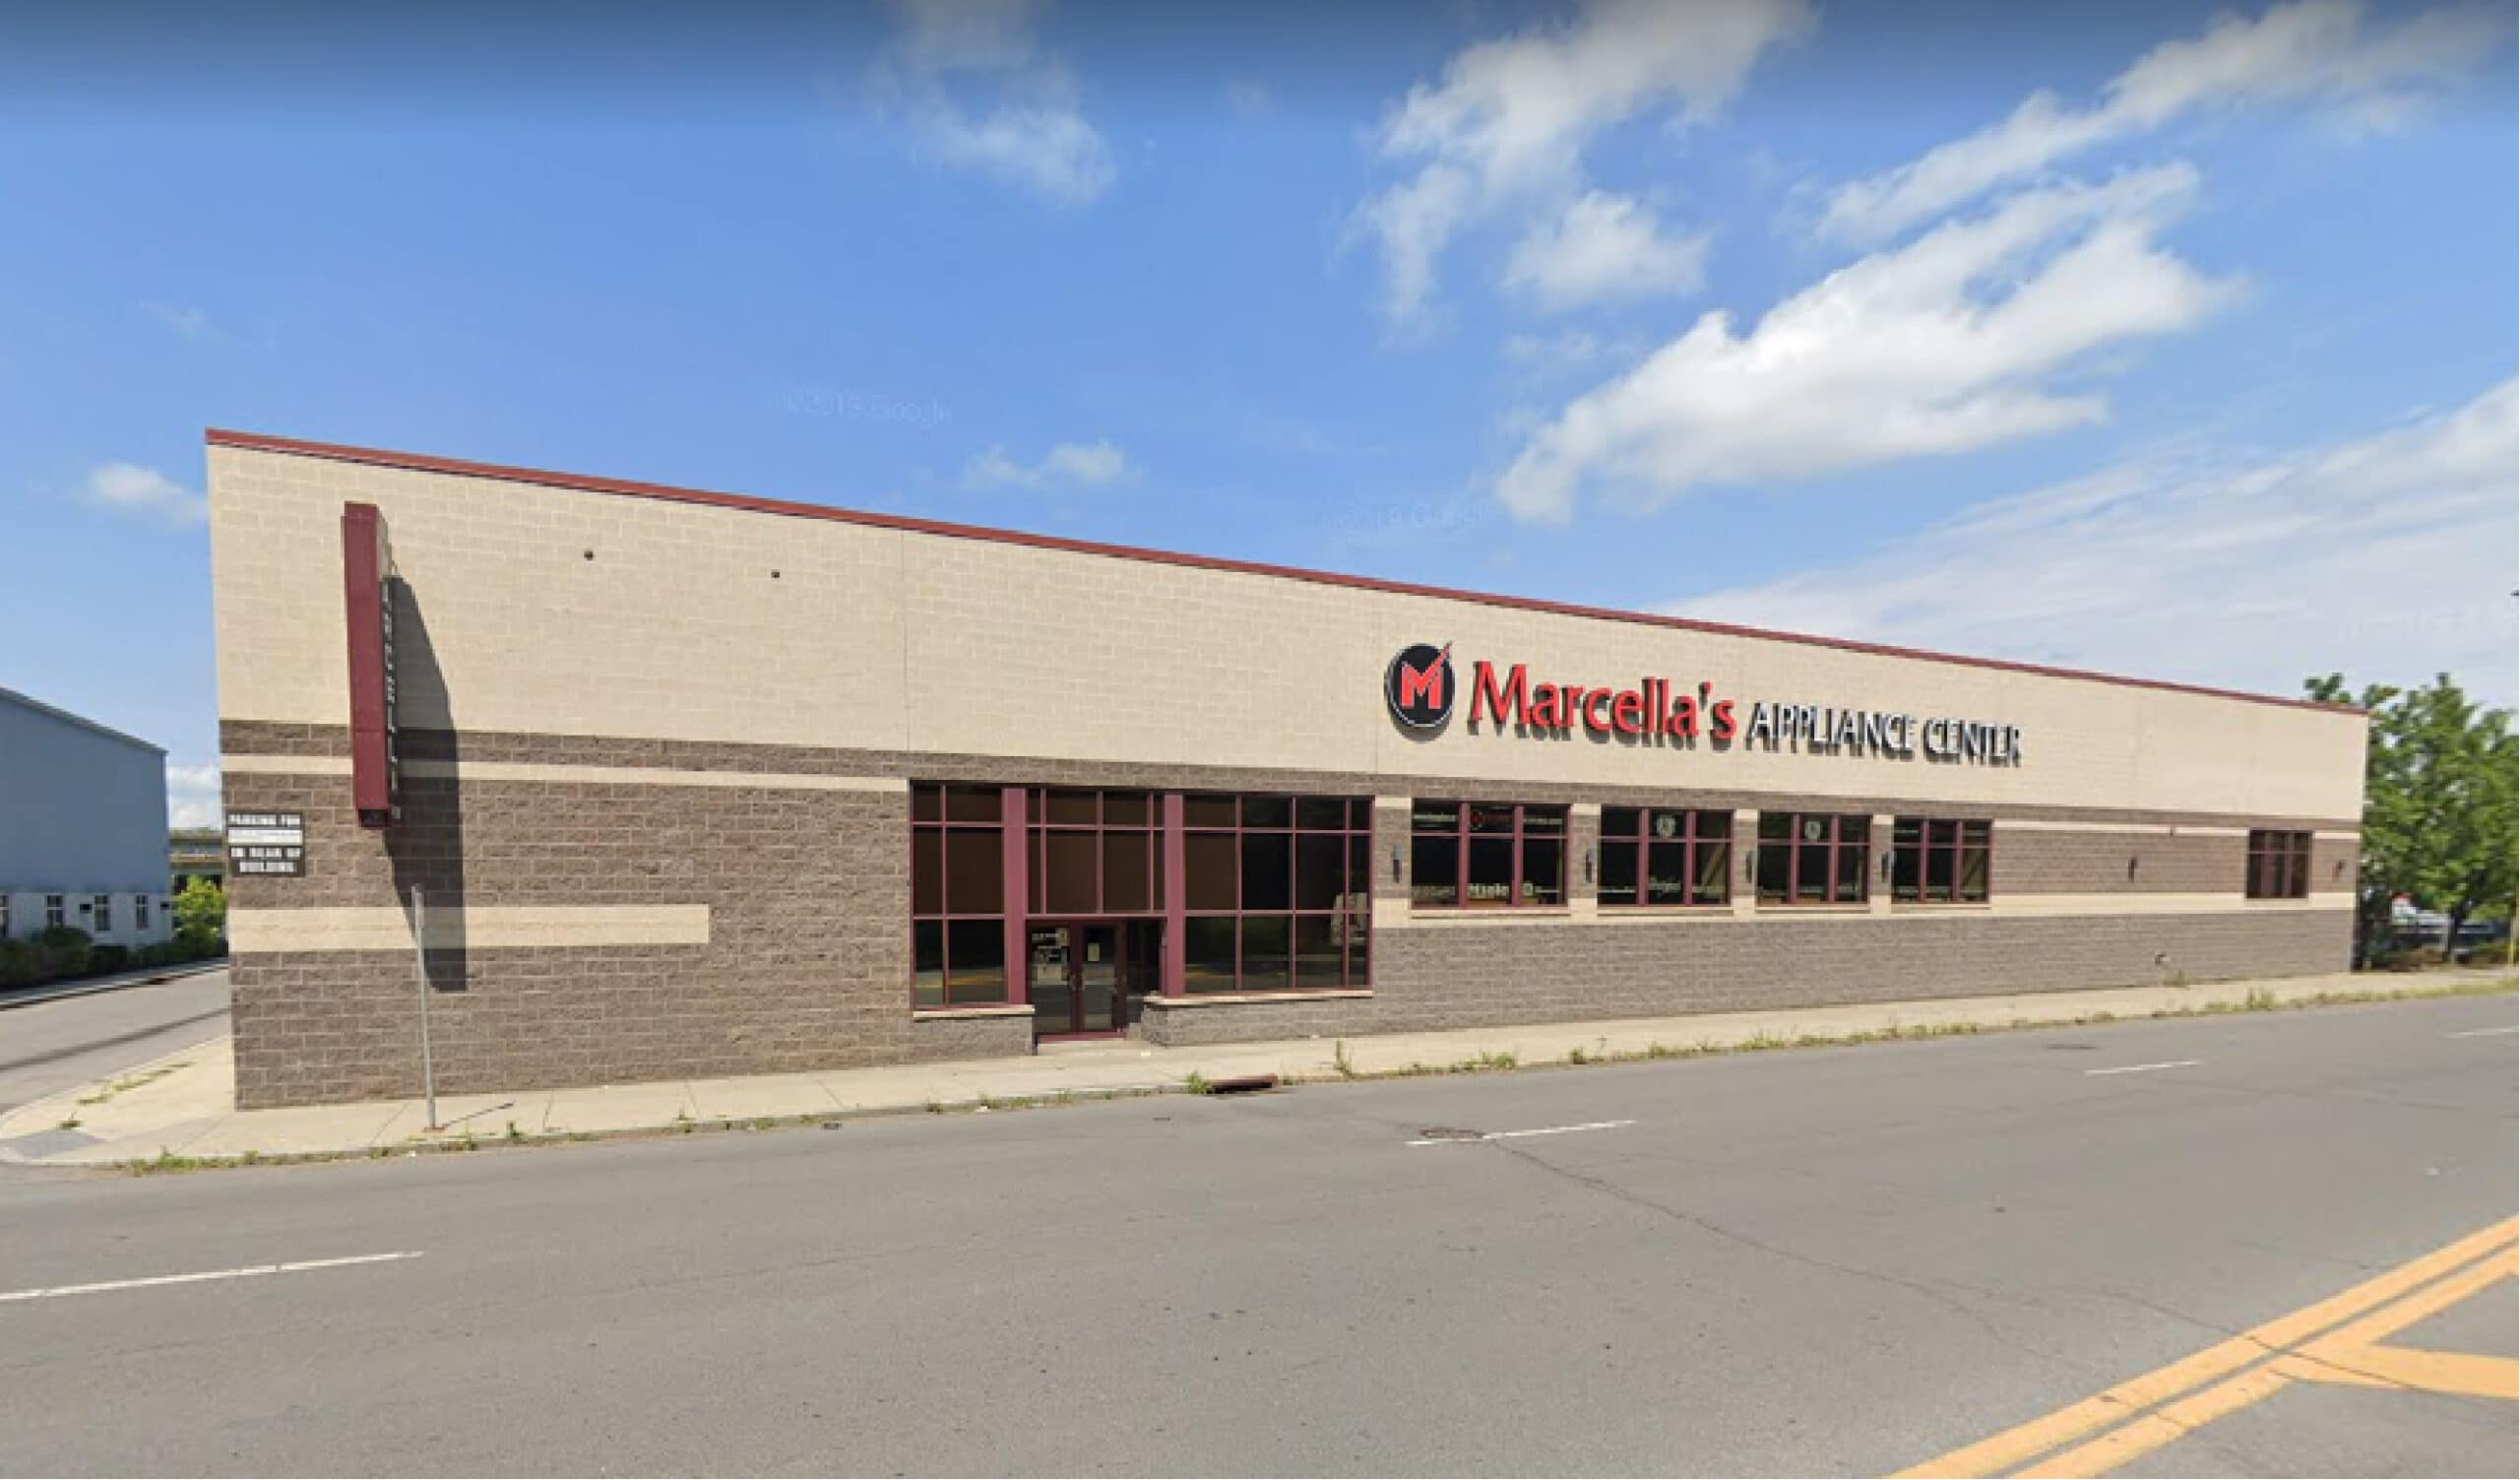 Marcella's Appliance gallery